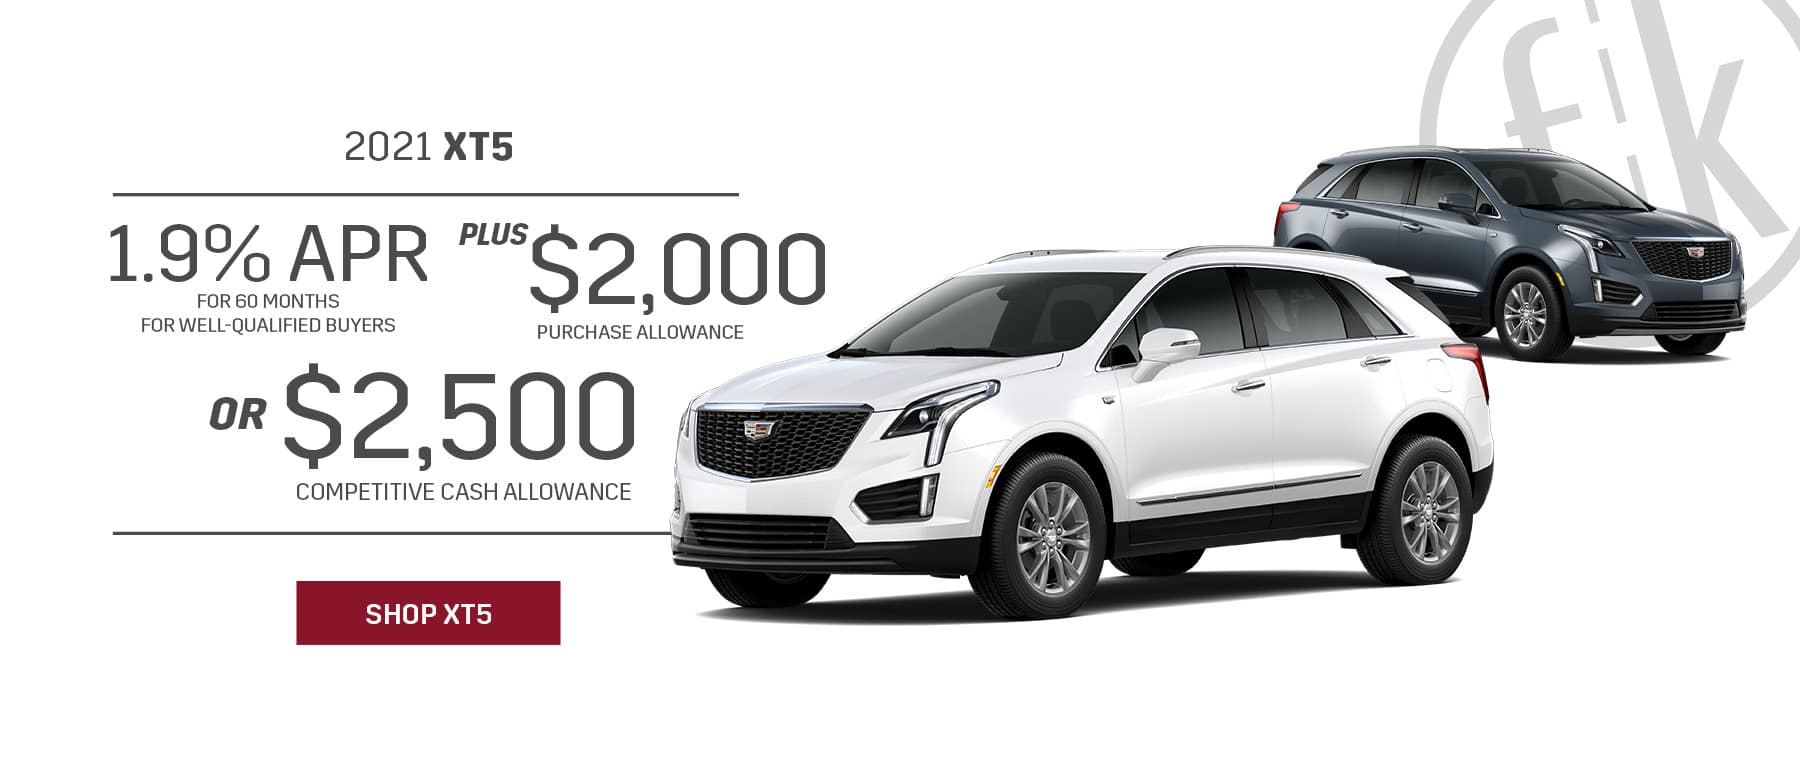 2021 XT5 1.9% for 60 mos PLUS $2,000 Purchase Allowance OR $2,500 Competitive Cash Allowance